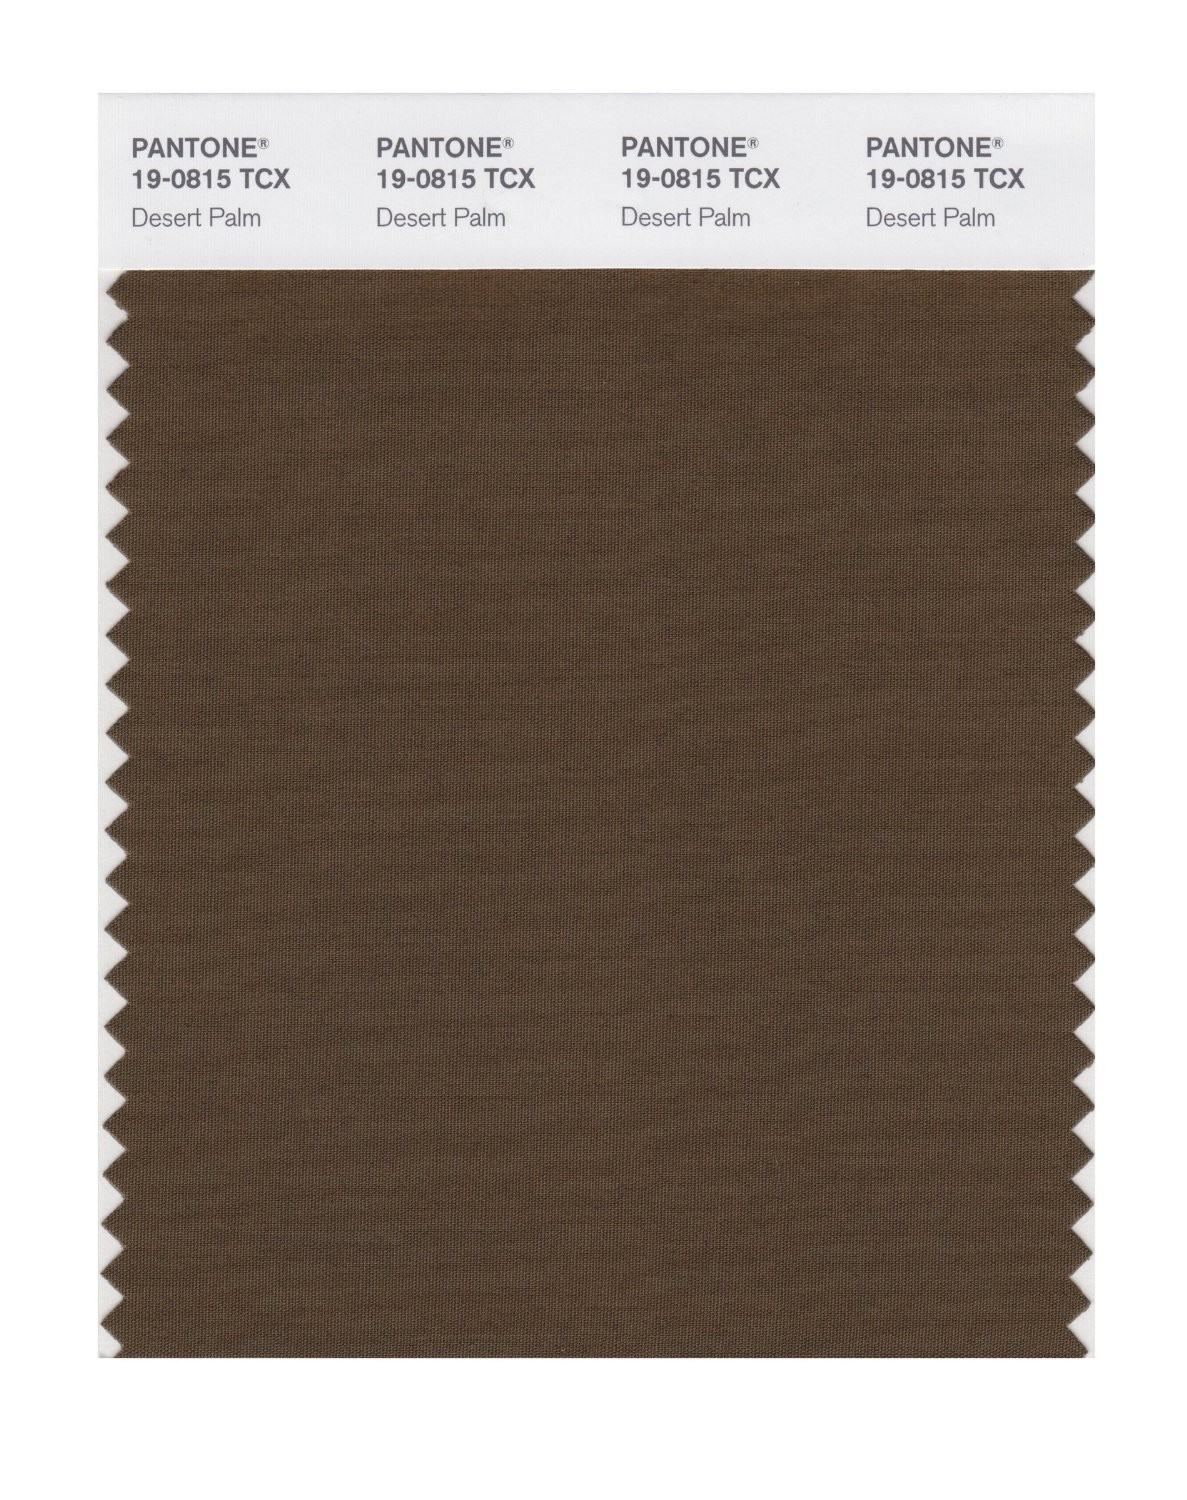 Pantone 19-0815 TCX Swatch Card Desert Palm